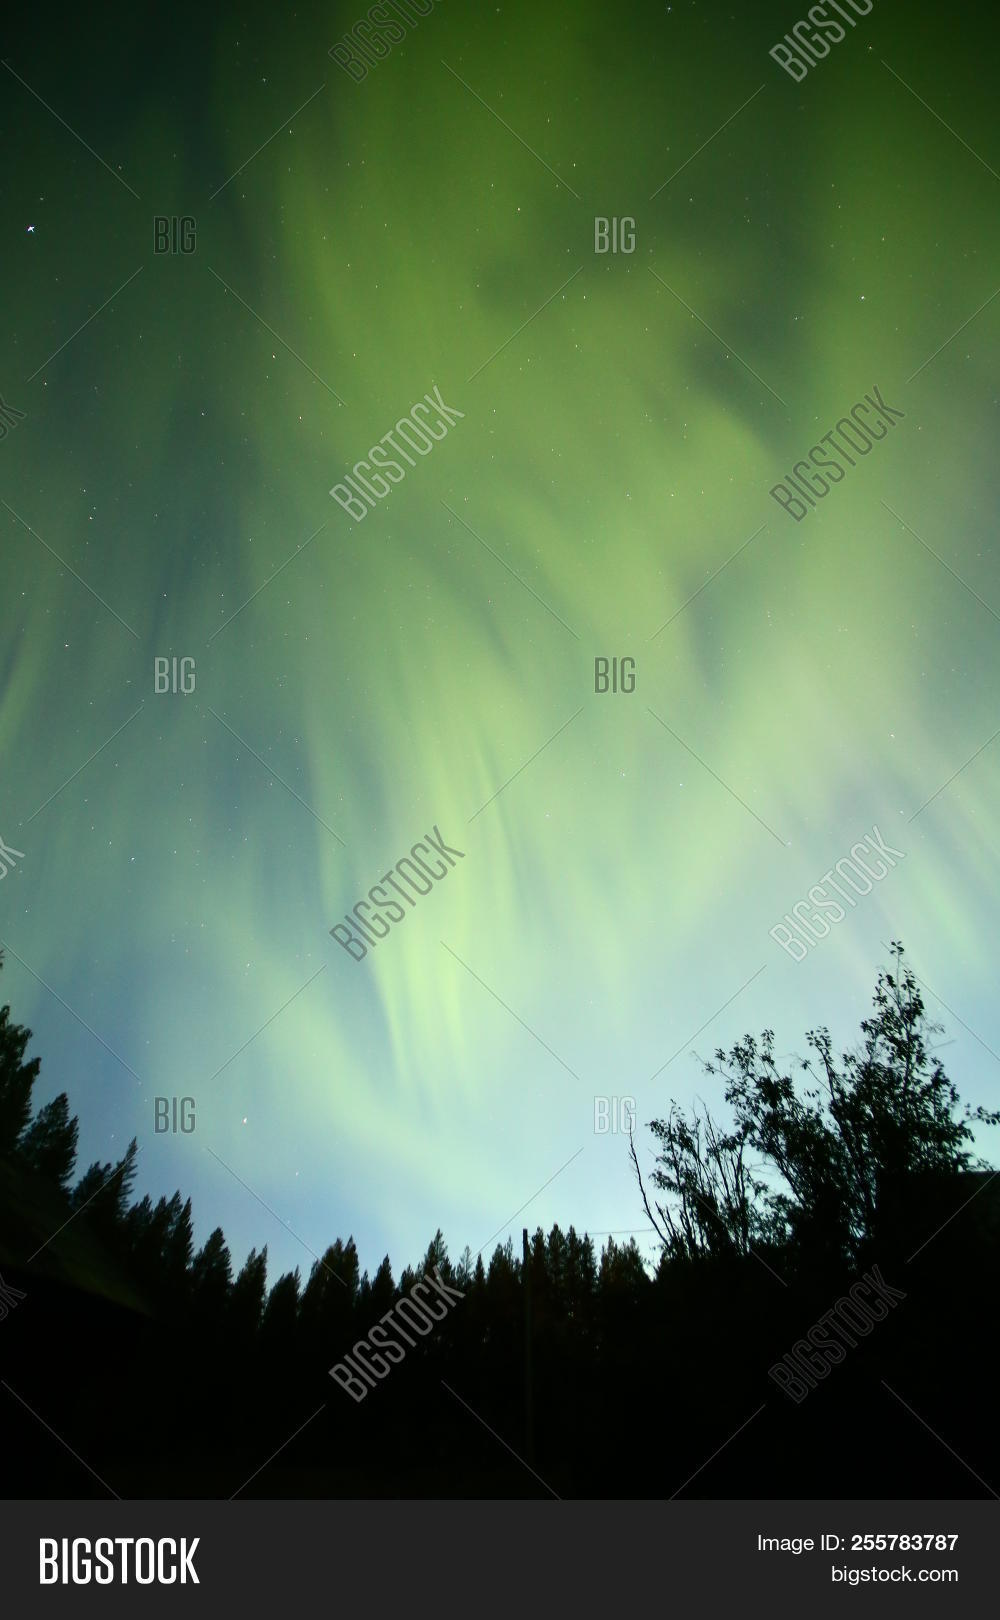 Above,Astronomy,Aurora,Back,Backlight,Black,Blue,Canopy,Celestial,Color,Colorful,Colour,Effect,Evening,Firmament,Focus,Forest,Green,Horizonal,Long,Luminary,Natural,Nature,Night,Norrbotten,North,Northern,Outdoors,Phenomenon,Pine,Silhouette,Stars,Stripe,Sweden,Tree,Vasterbotten,Wide,angle,body,borealis,exposure,lights,lit,sky,spectacle,top